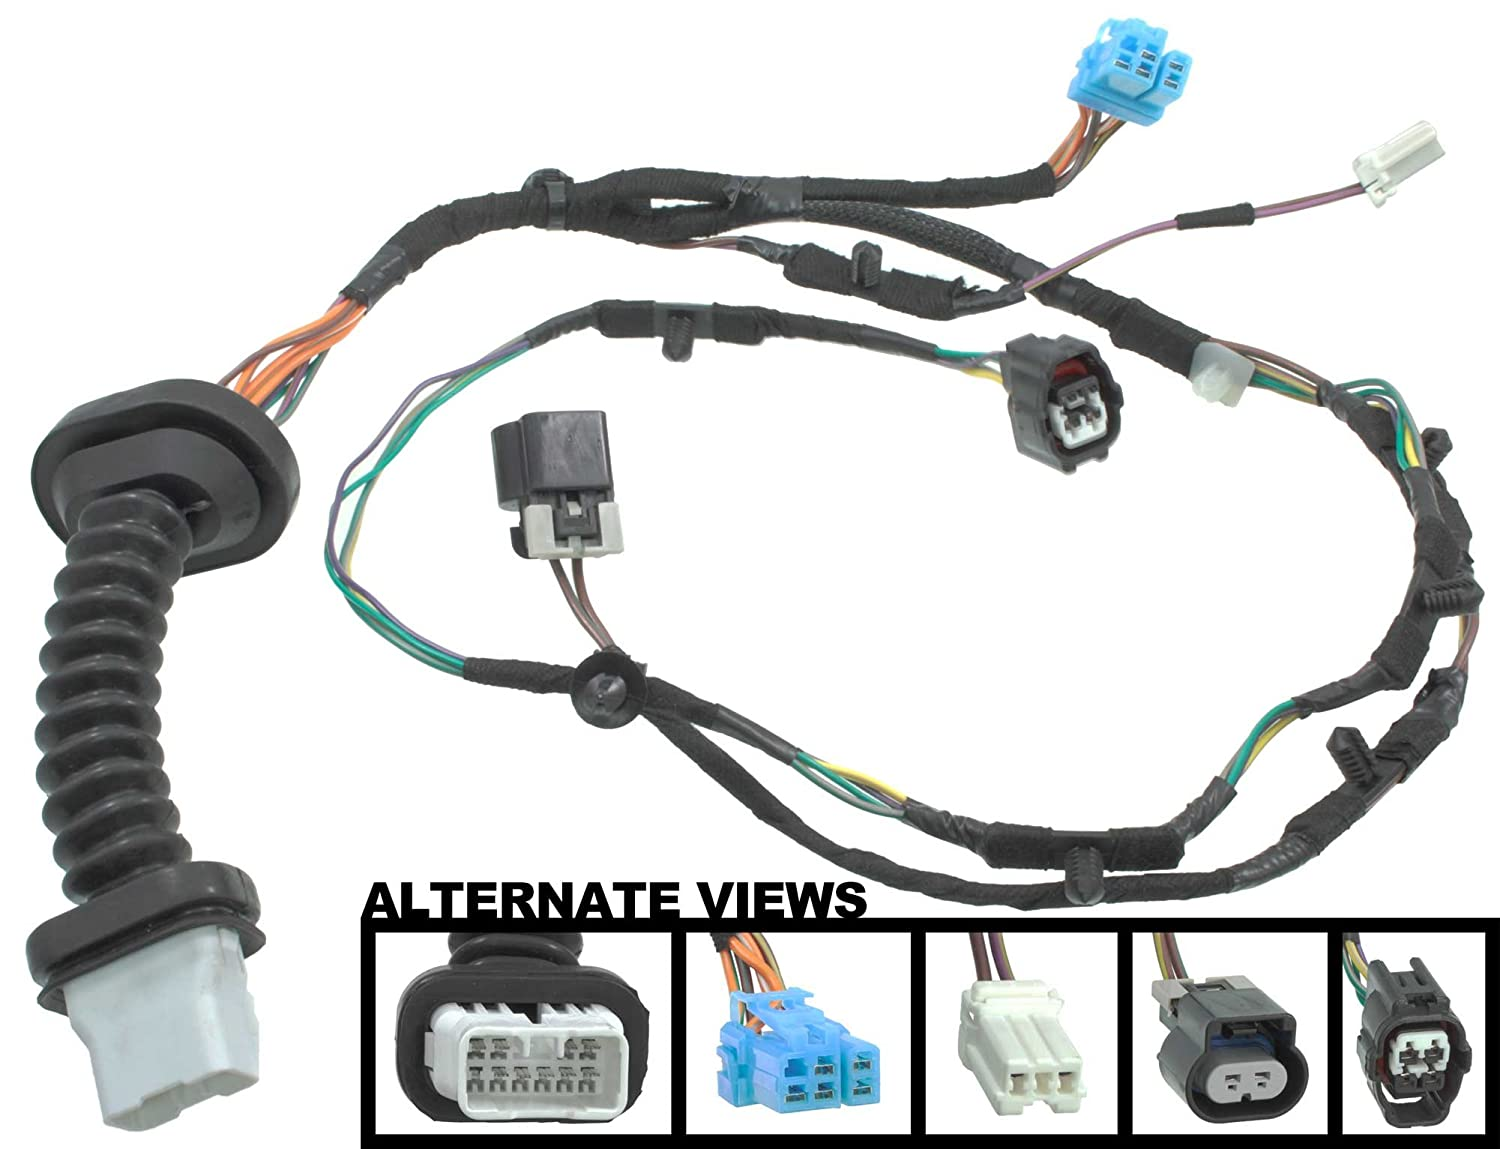 71fJrC9anCL._SL1500_ amazon com apdty 756617 power door lock wiring pigtail connector door wiring harness at n-0.co